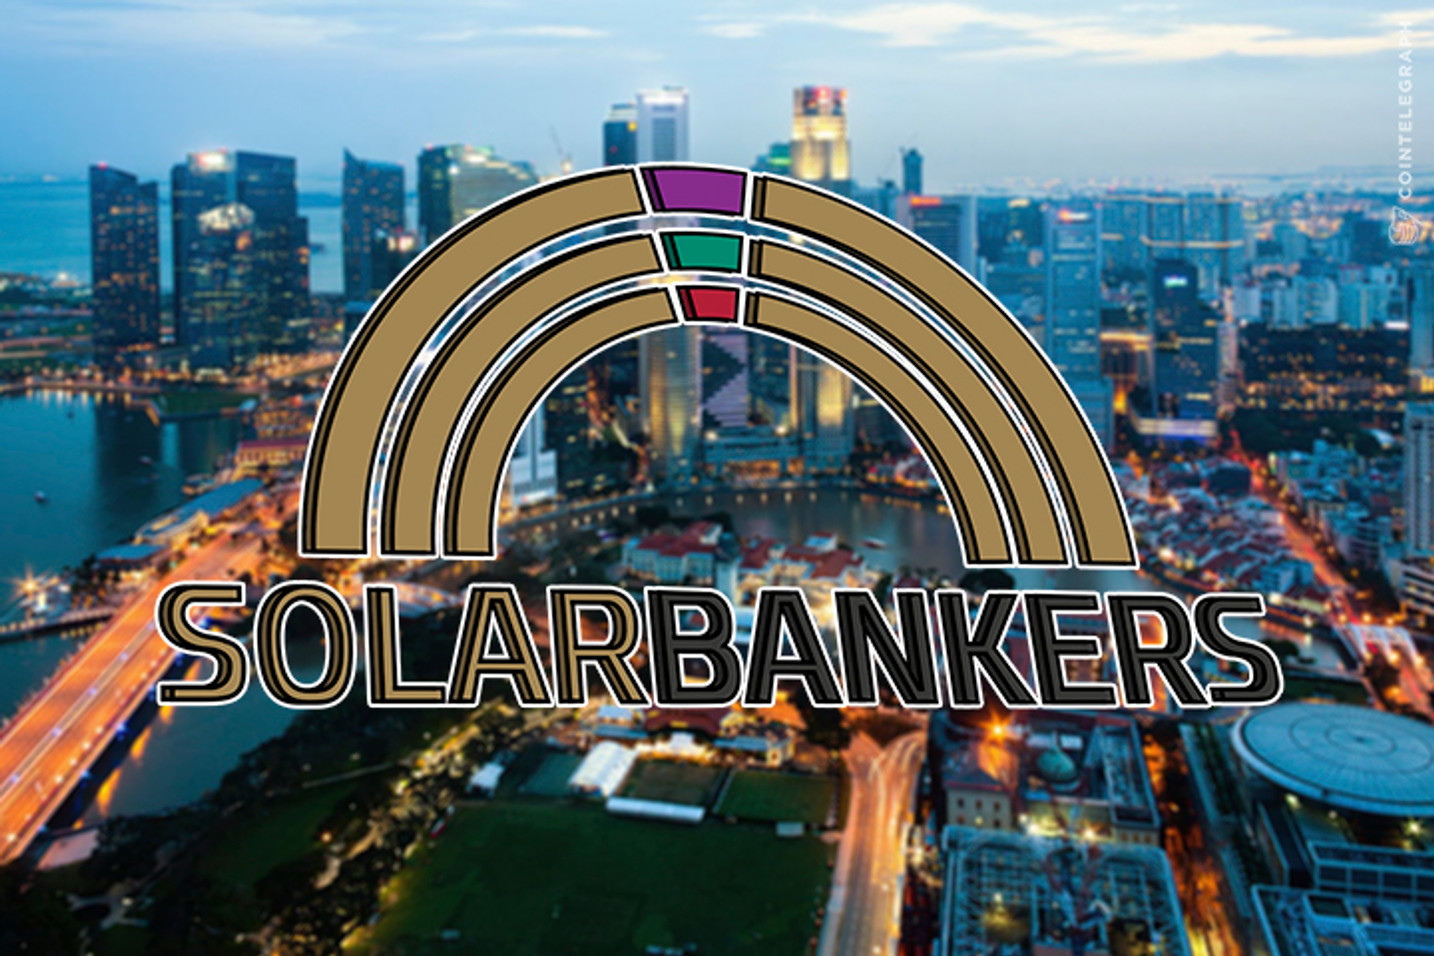 Solar Bankers to Develop Decentralized Electricity Network with SkyLedger